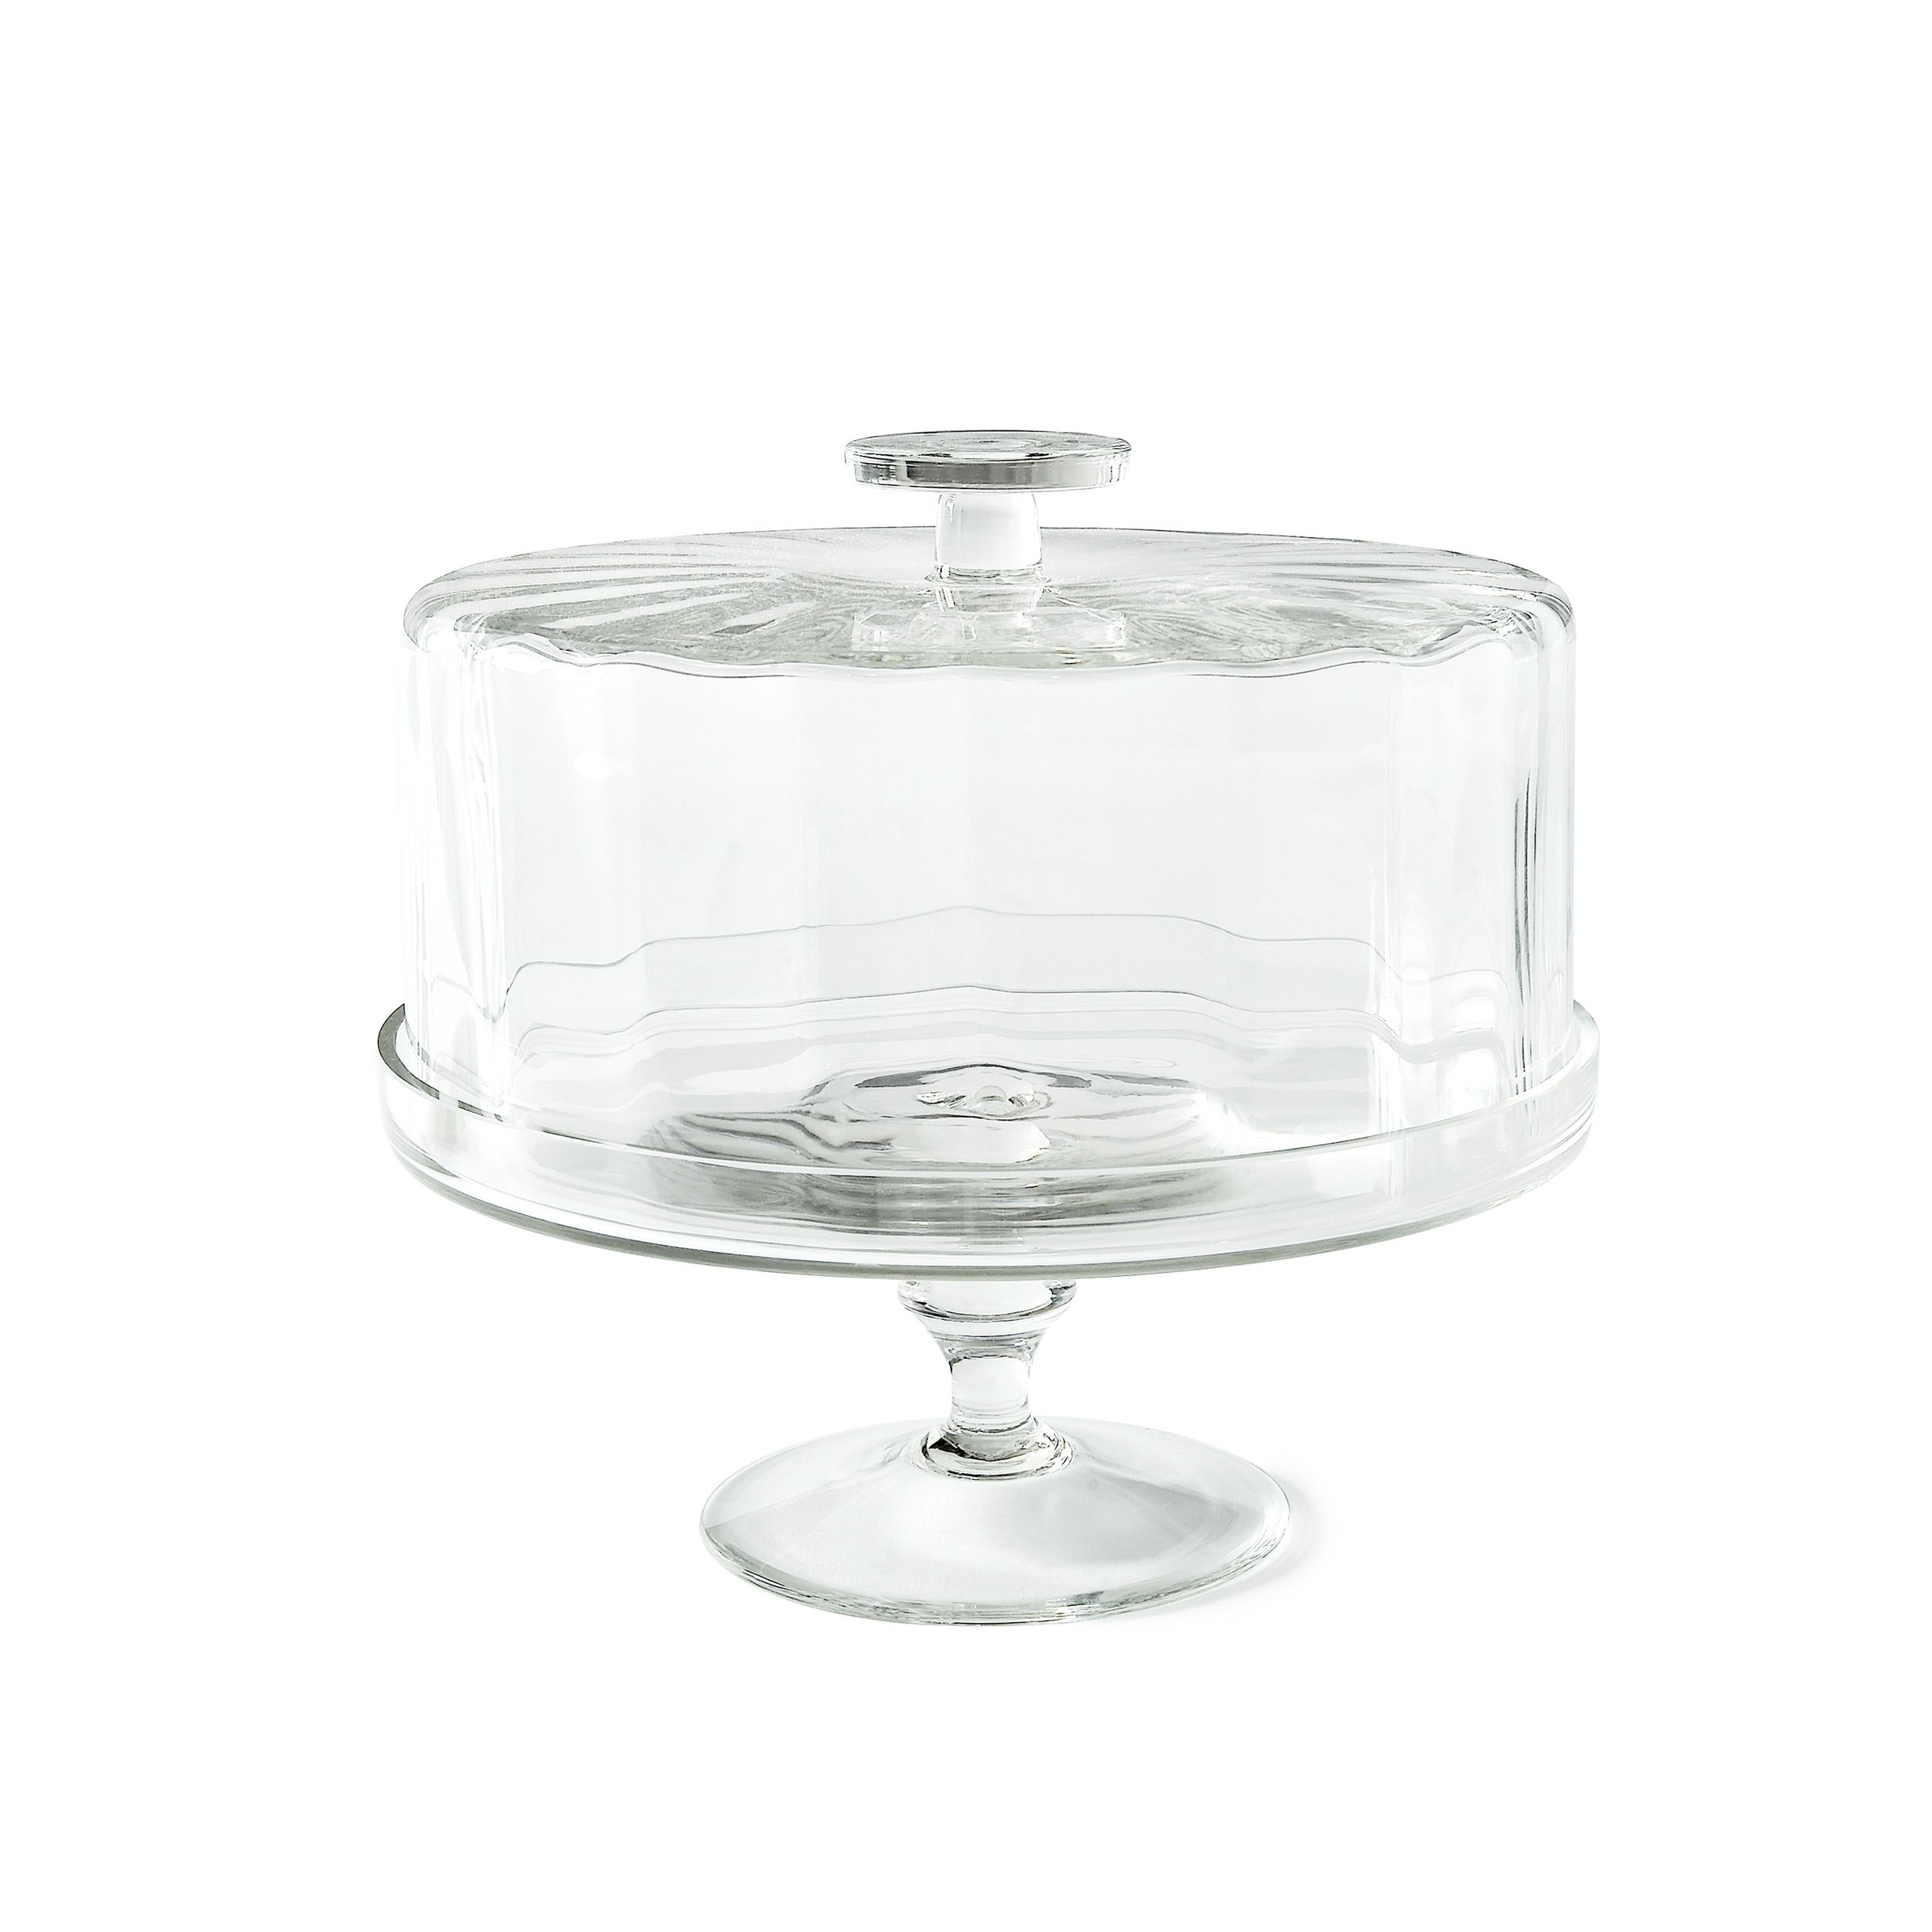 Park Art|My WordPress Blog_Clear Cake Stand With Dome Lid